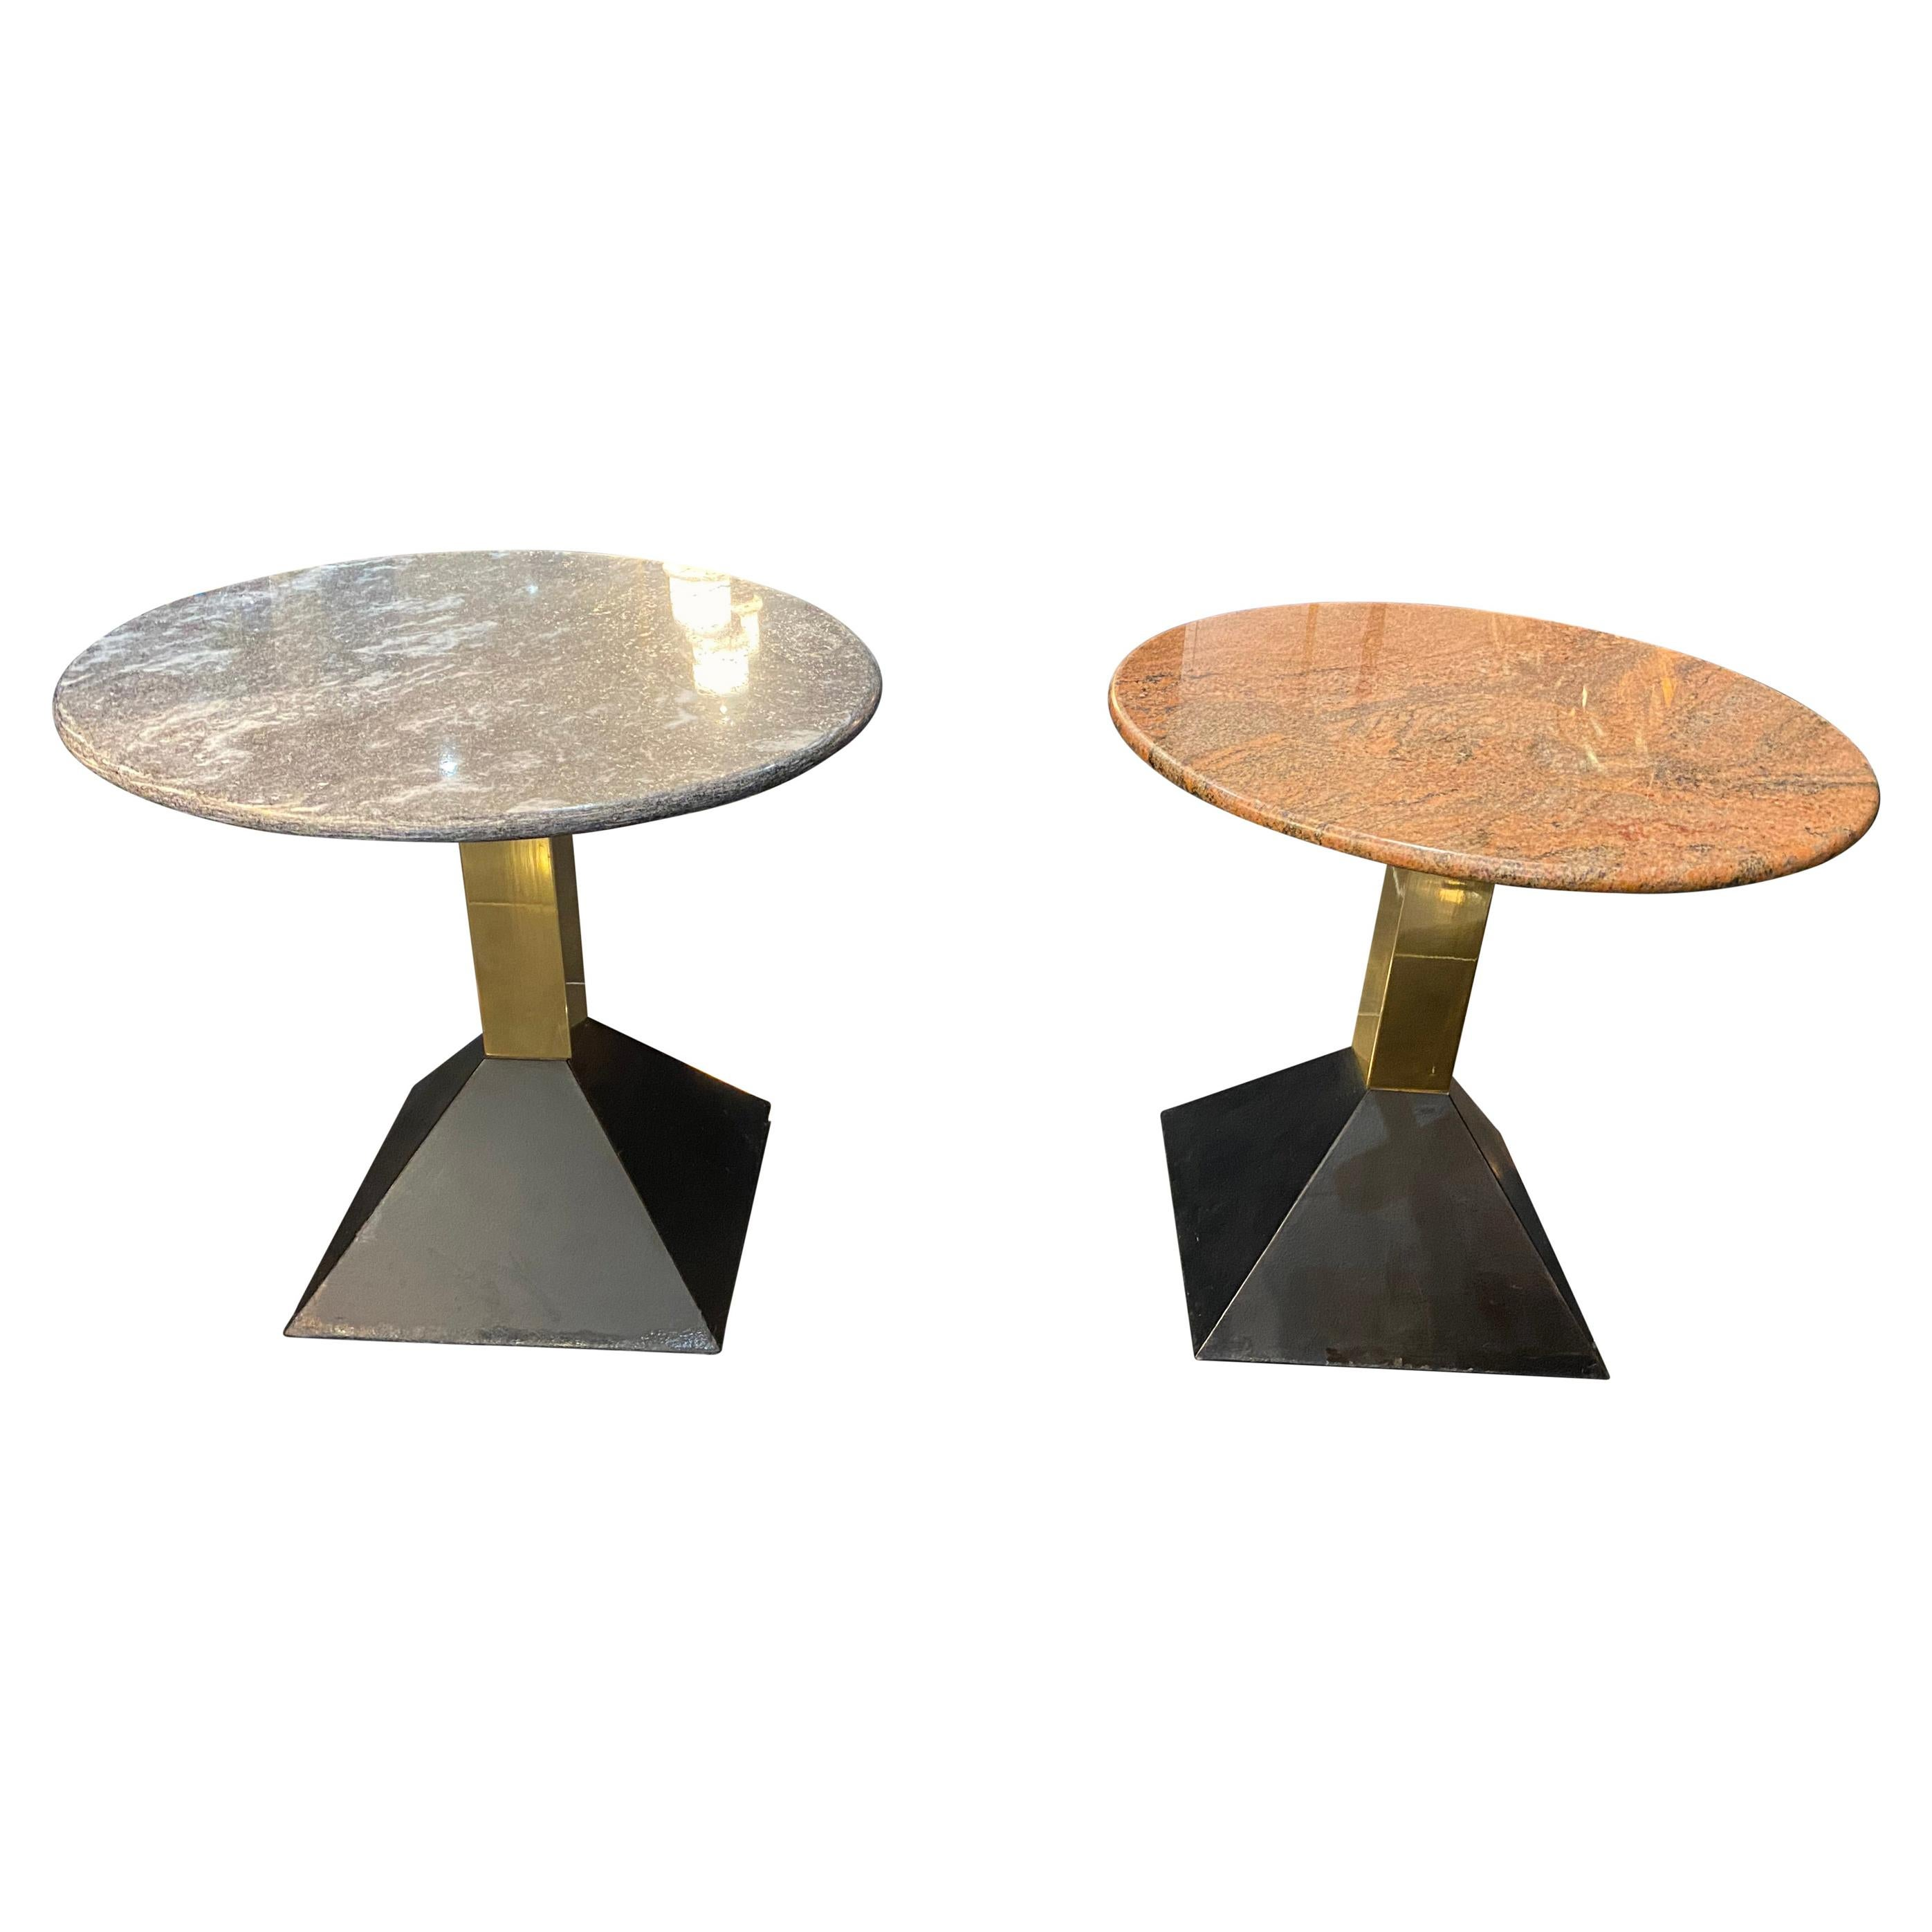 1970s Italian Marble Top Cocktail Table